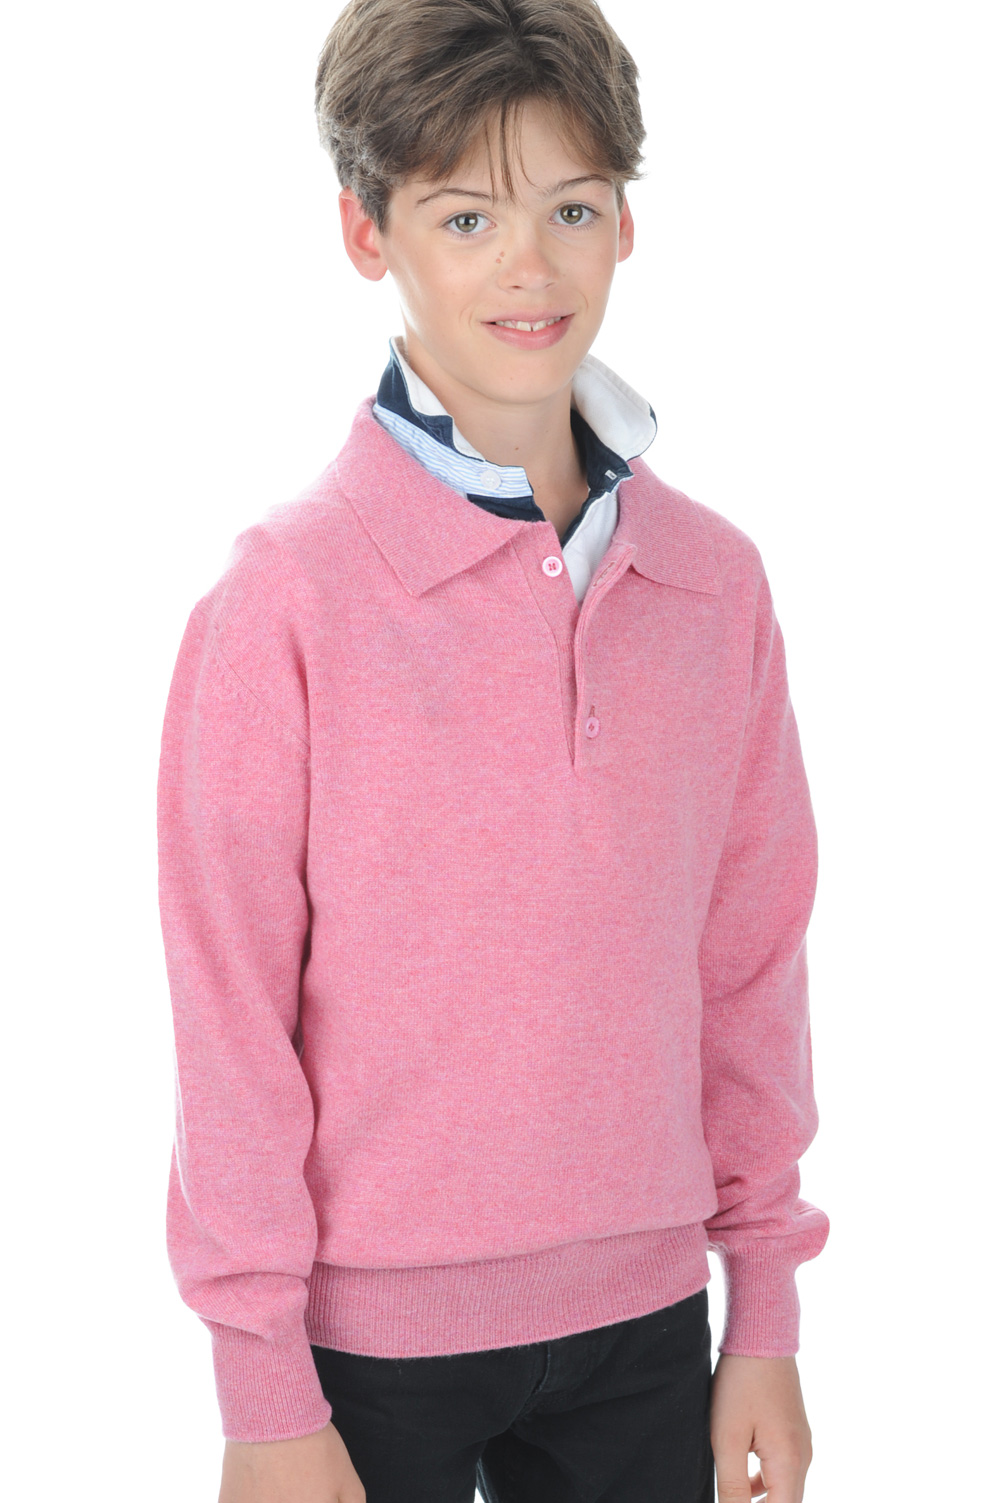 cashmere men boys alex boy bubble gum 8